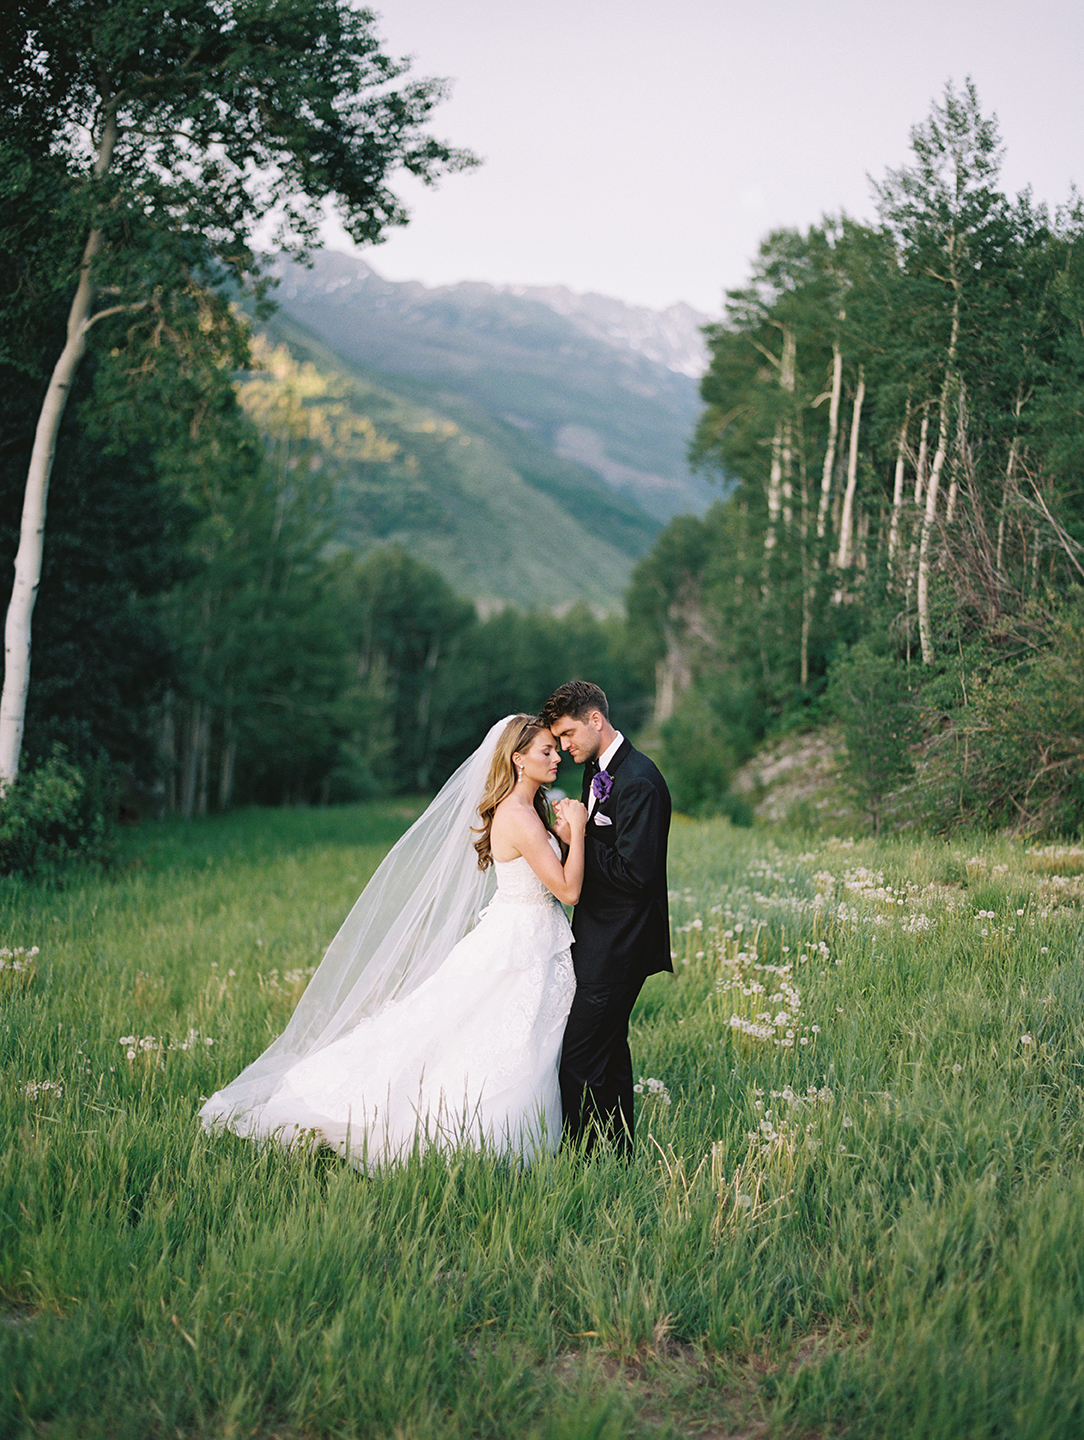 324_Graham+Shannon_Fine_Art_Film_Photography_Wedding_Colorado_.jpg